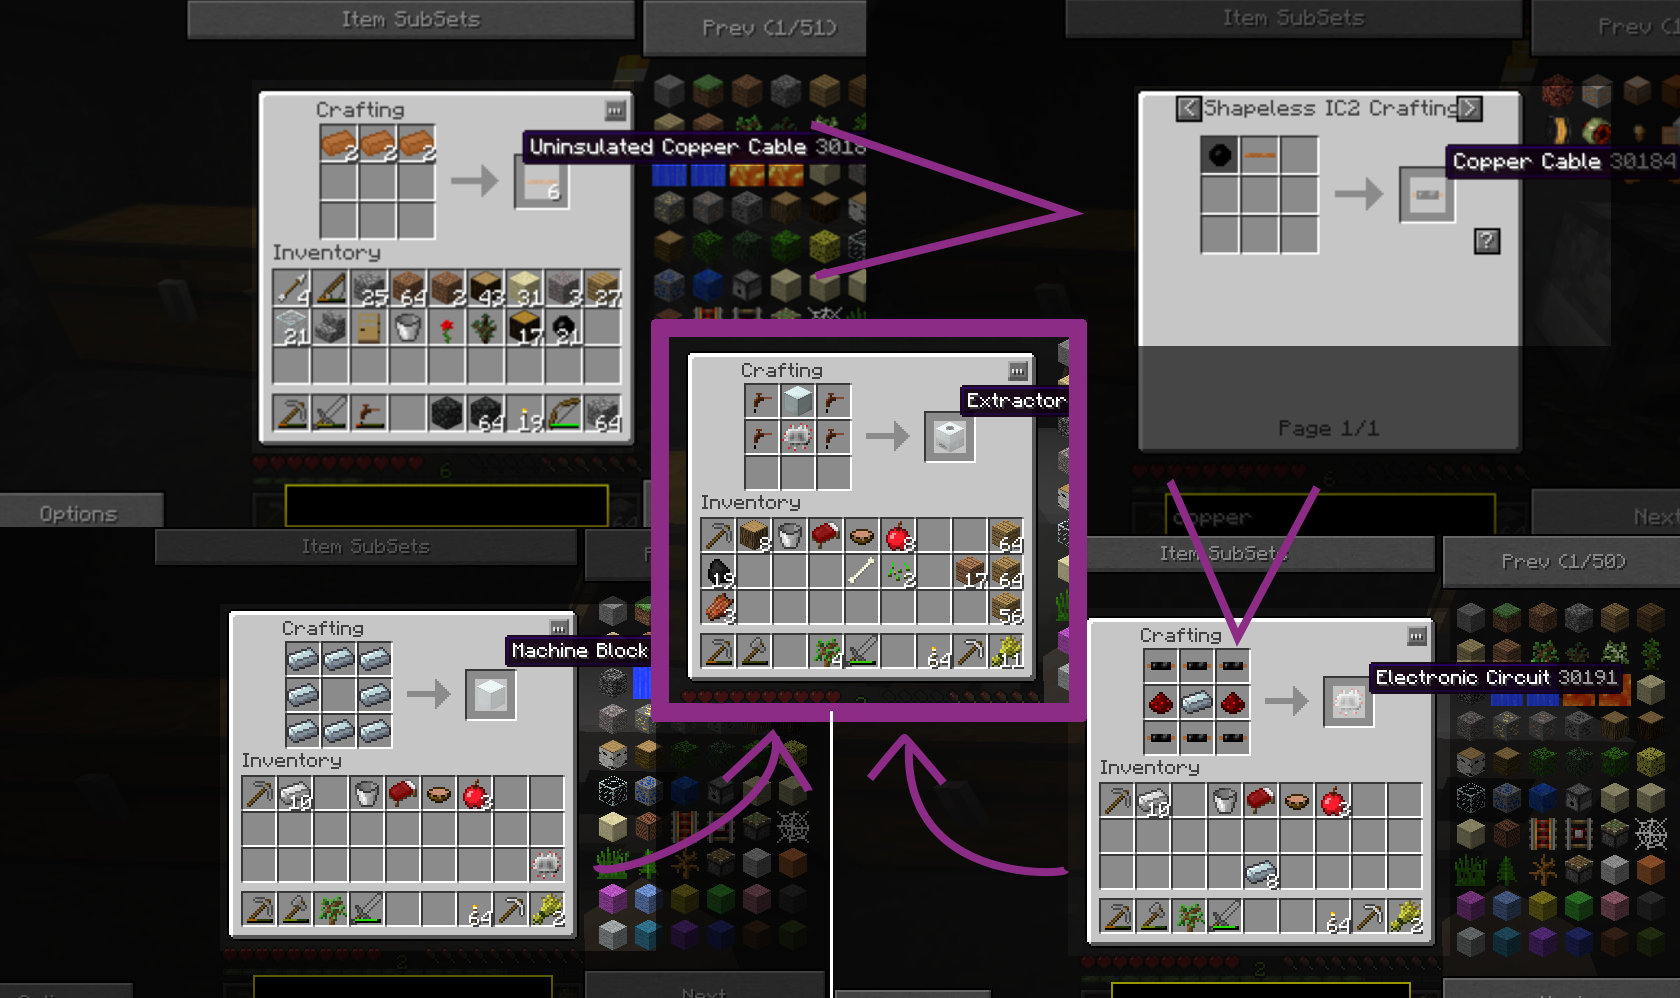 Copper Cable Tekkit : Back to modded minecraft may contain spoilers